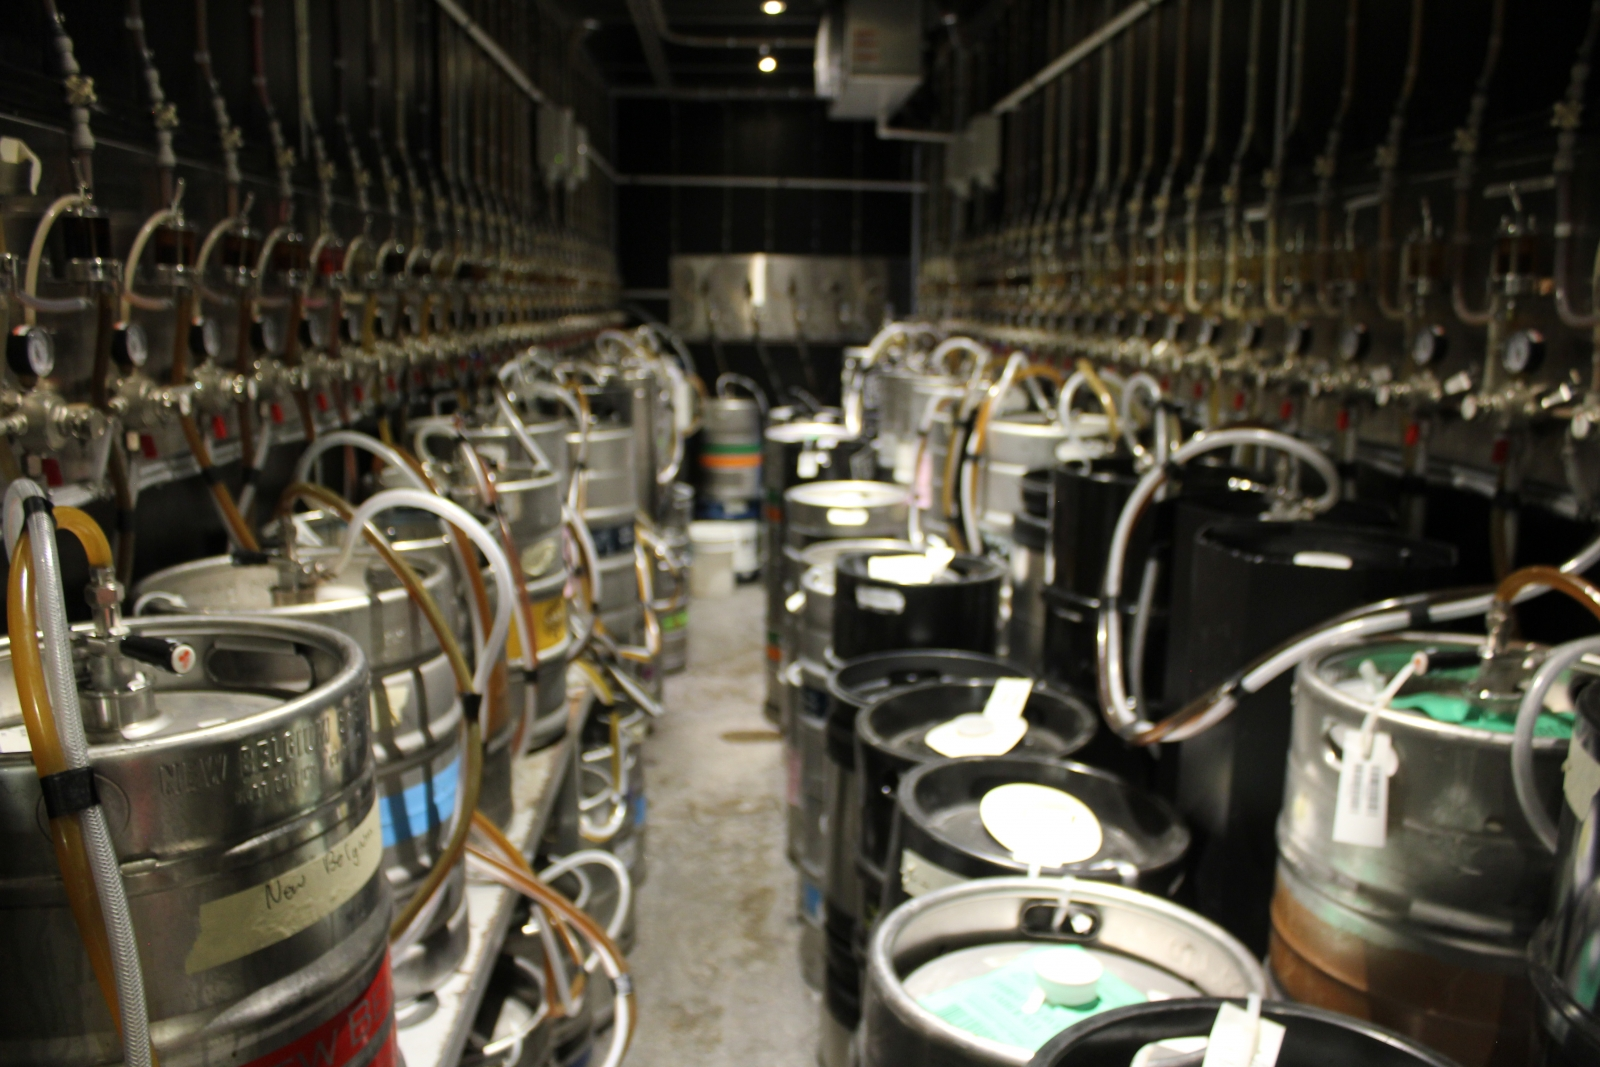 Craft Beer Market's frosty backroom is home to an impressive number of beer kegs, most of which are on tap.